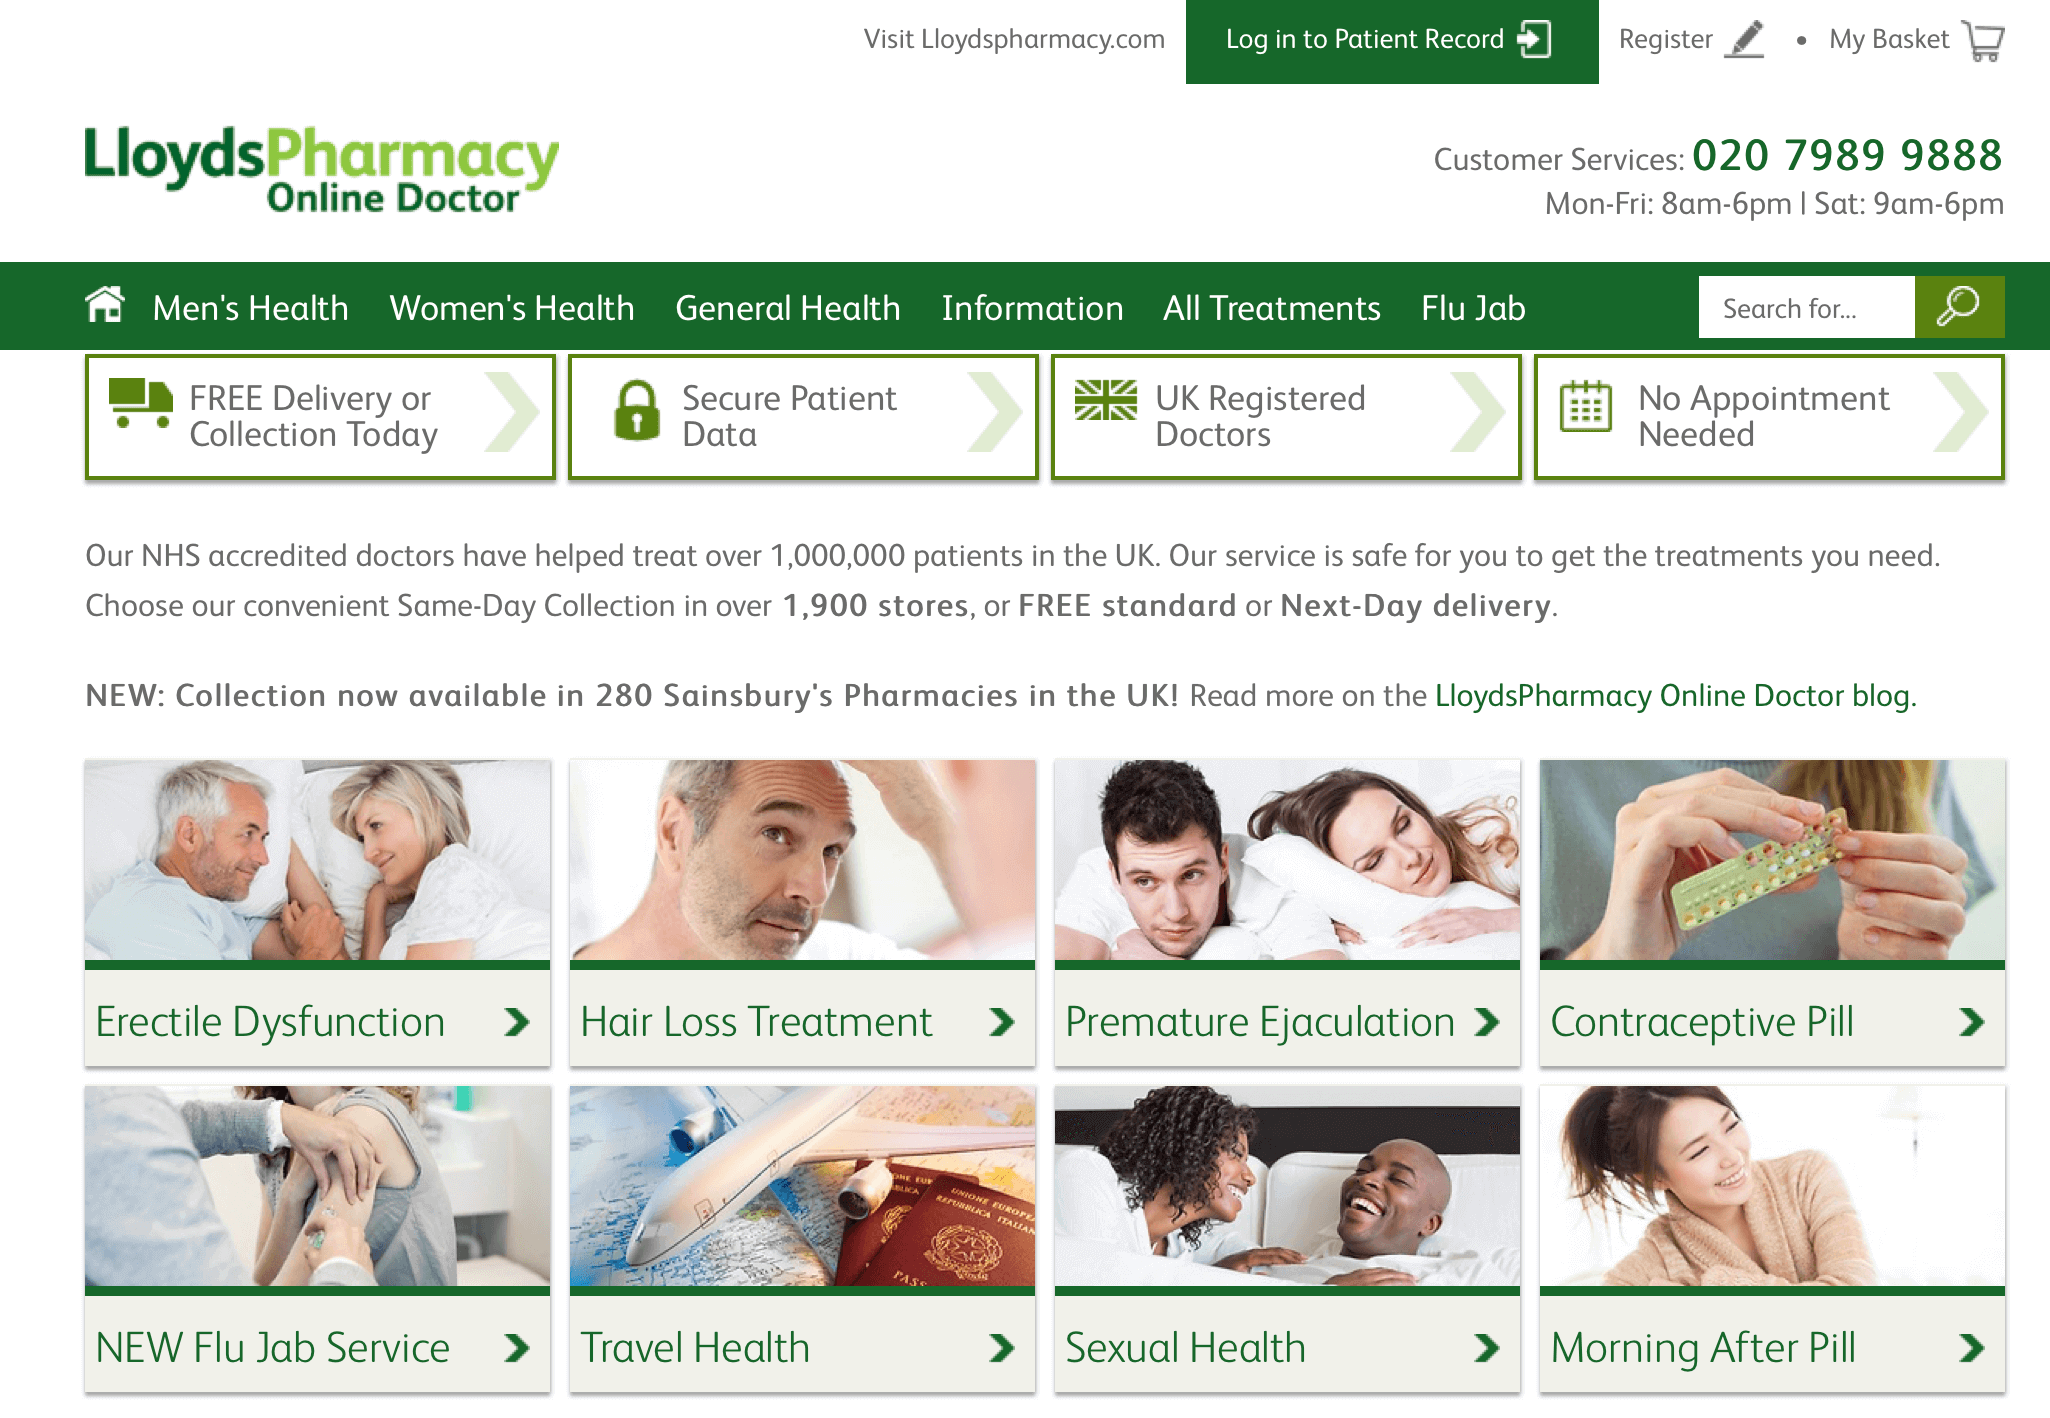 OnlineDoctor.LloydsPharmacy.com Pharmacy Review